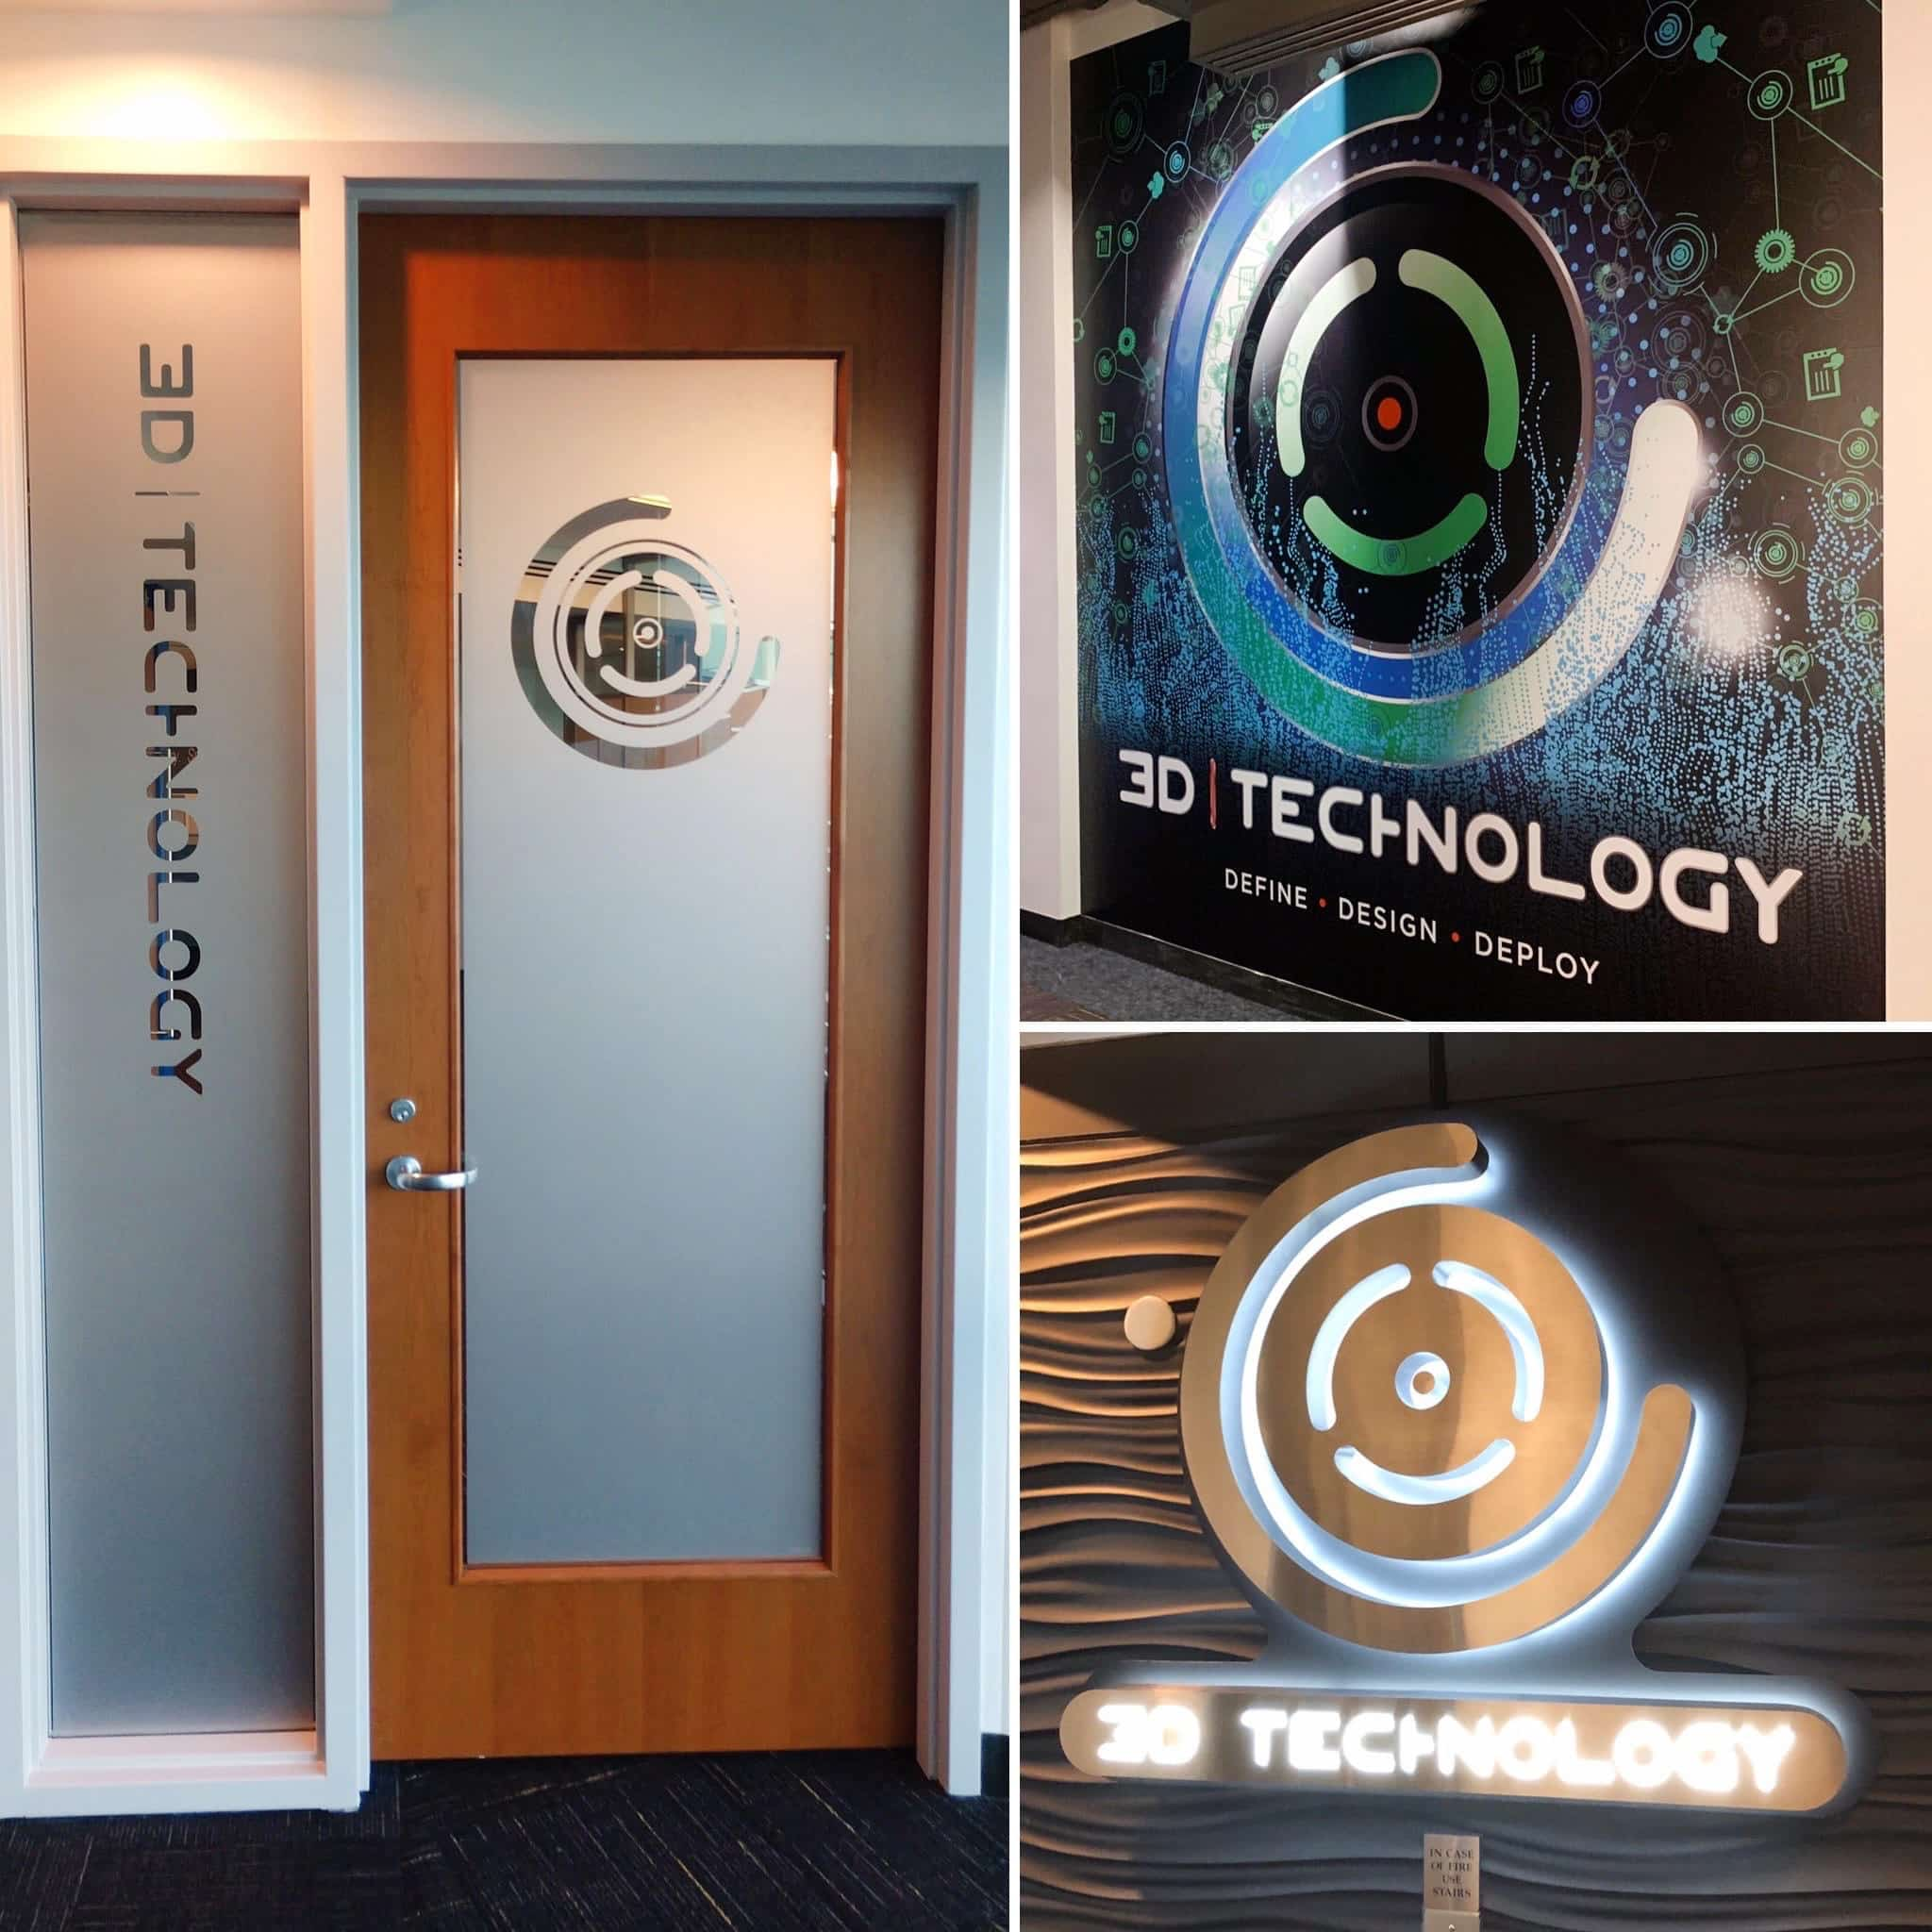 Environmental Rebrand Project for 3D Technology fabricated & installed by 12-PointSignWorks